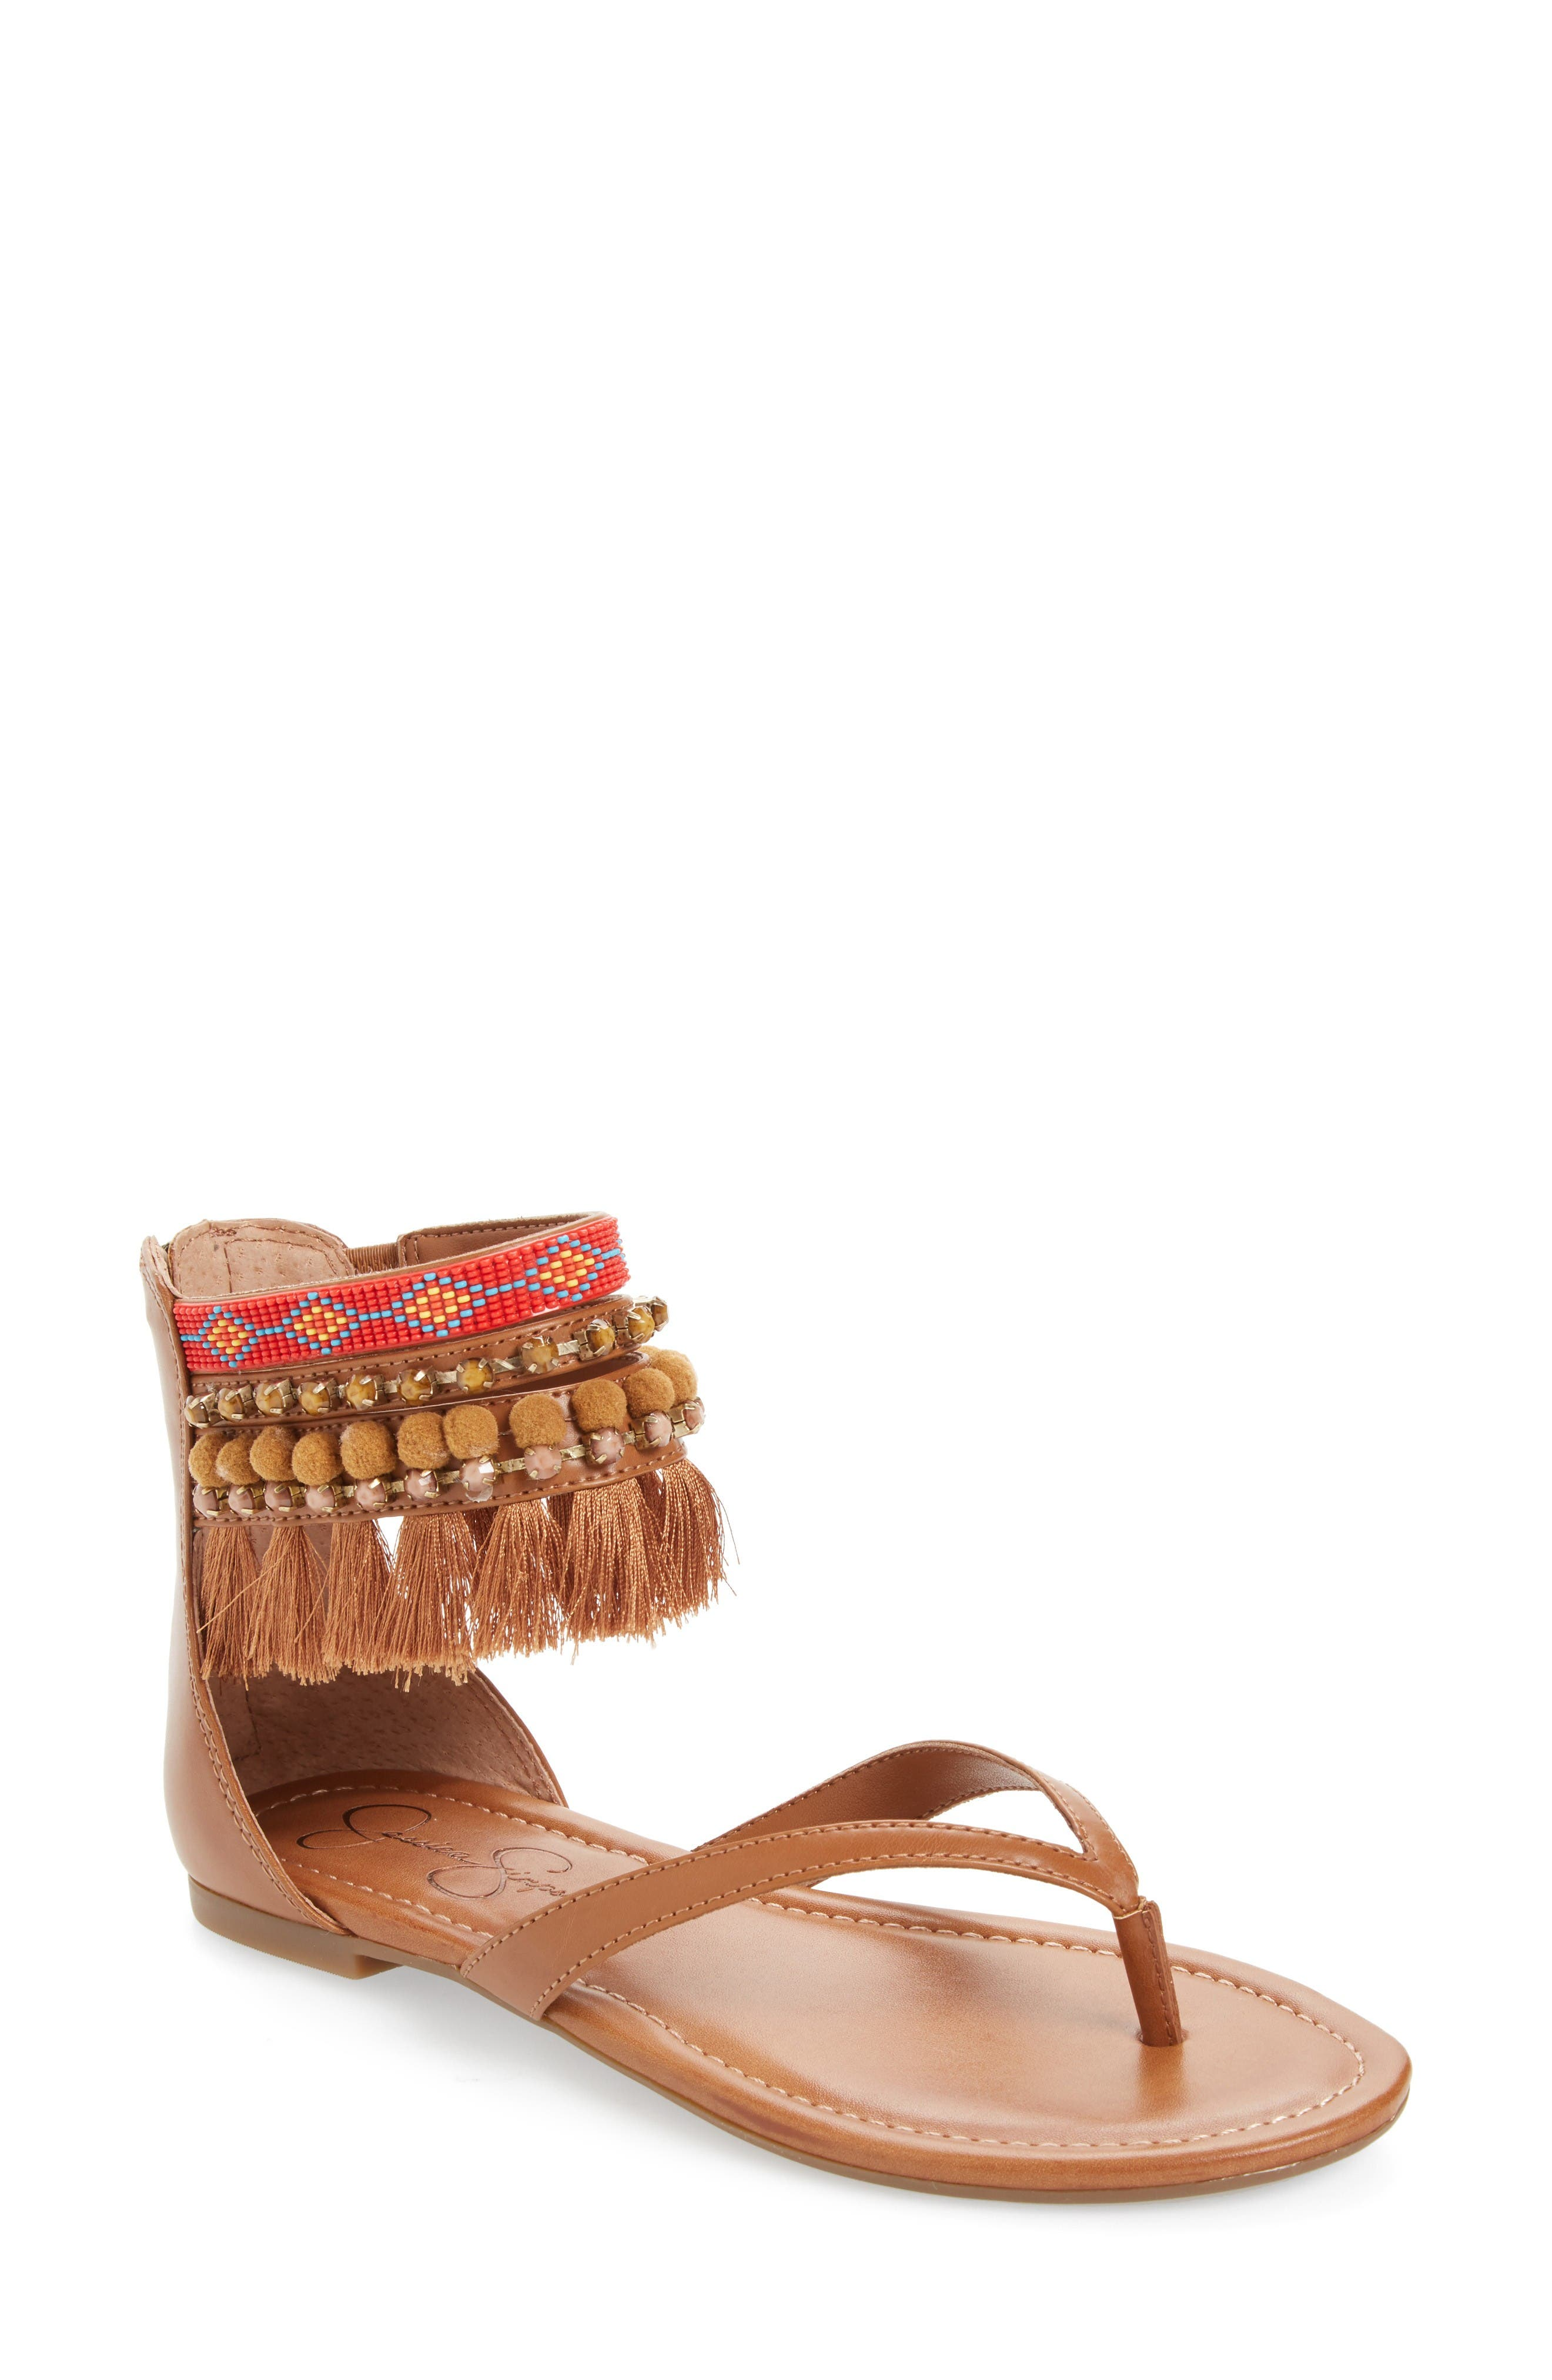 Alternate Image 1 Selected - Jessica Simpson Raquelle Embellished Sandal (Women)